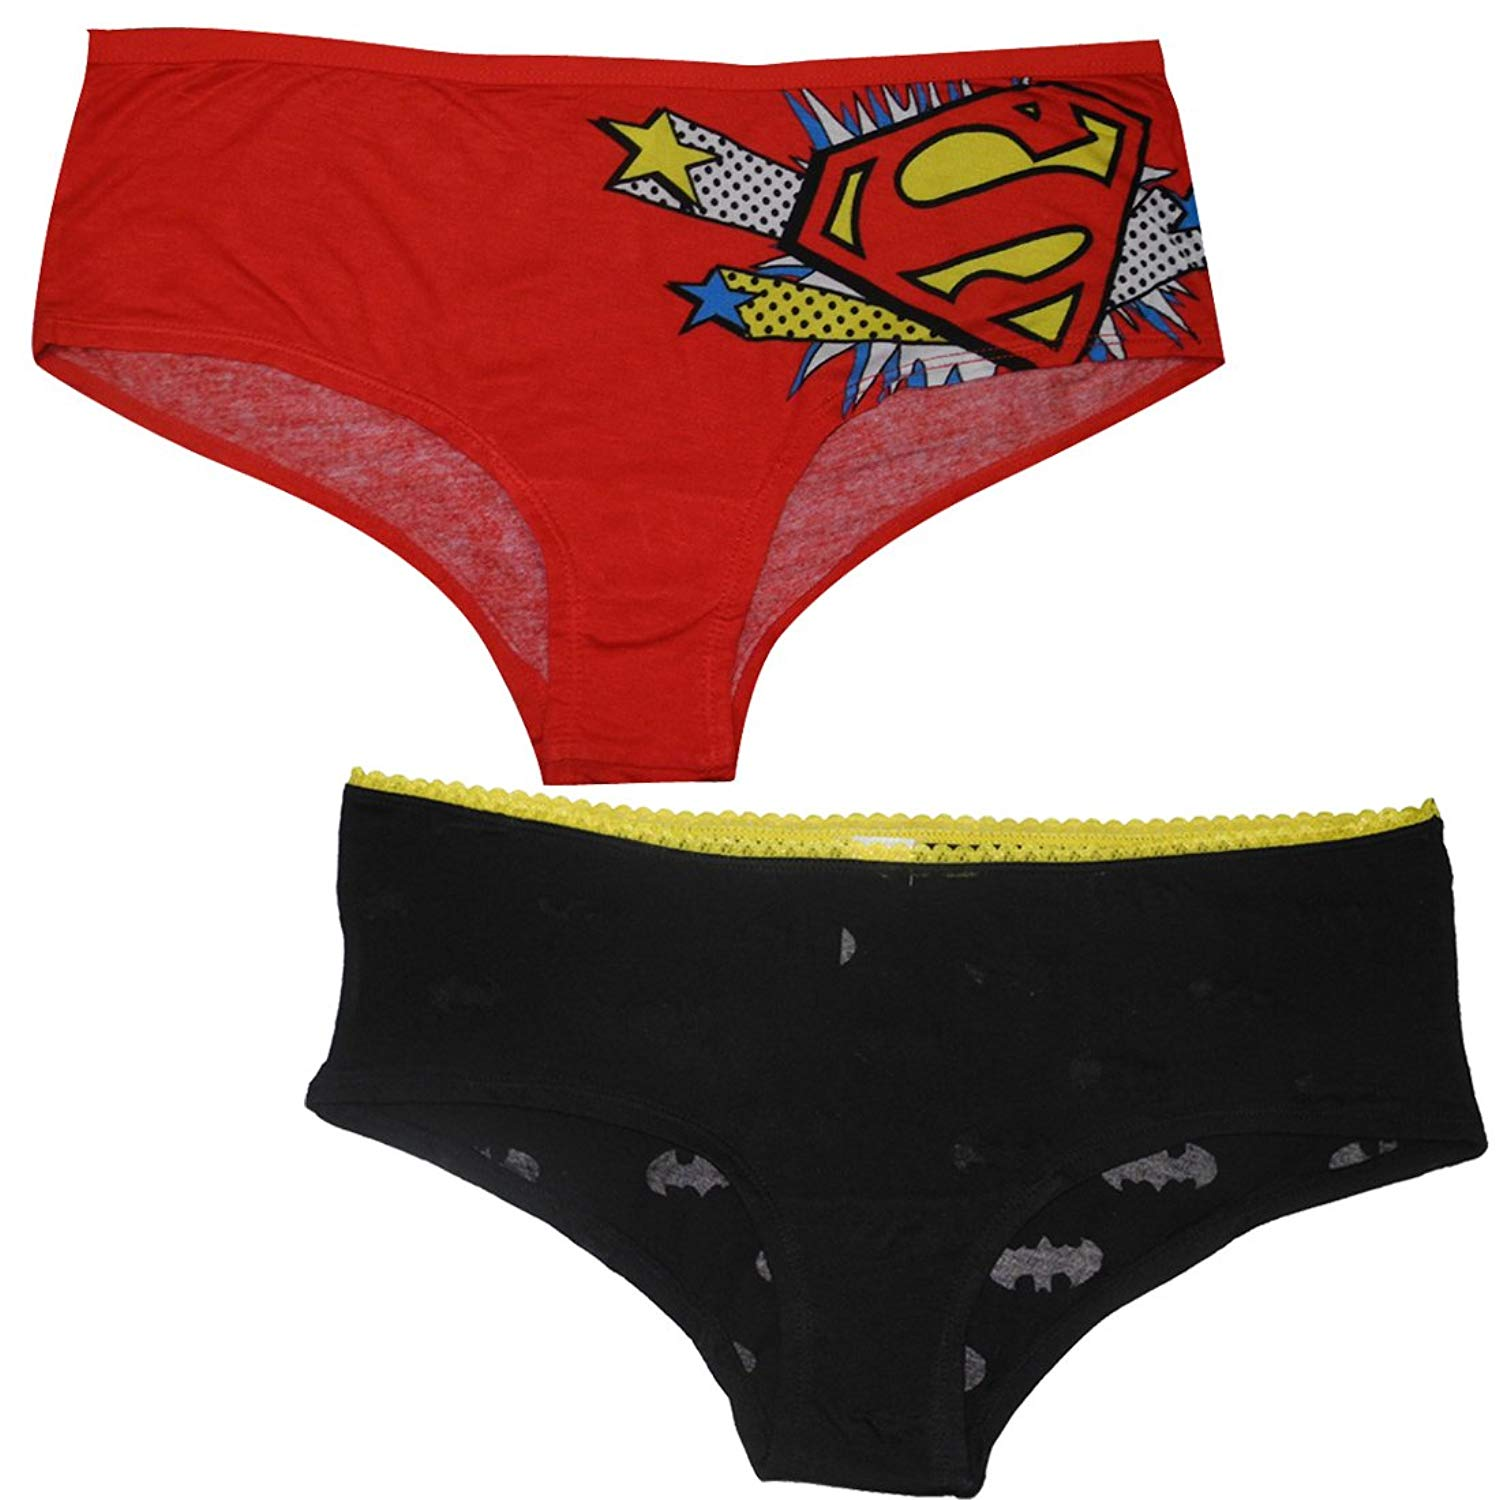 dee2afe49a72a Get Quotations · (Pack of 2) Womens SUPERGIRL   BATGIRL Stretch Brief  Panties